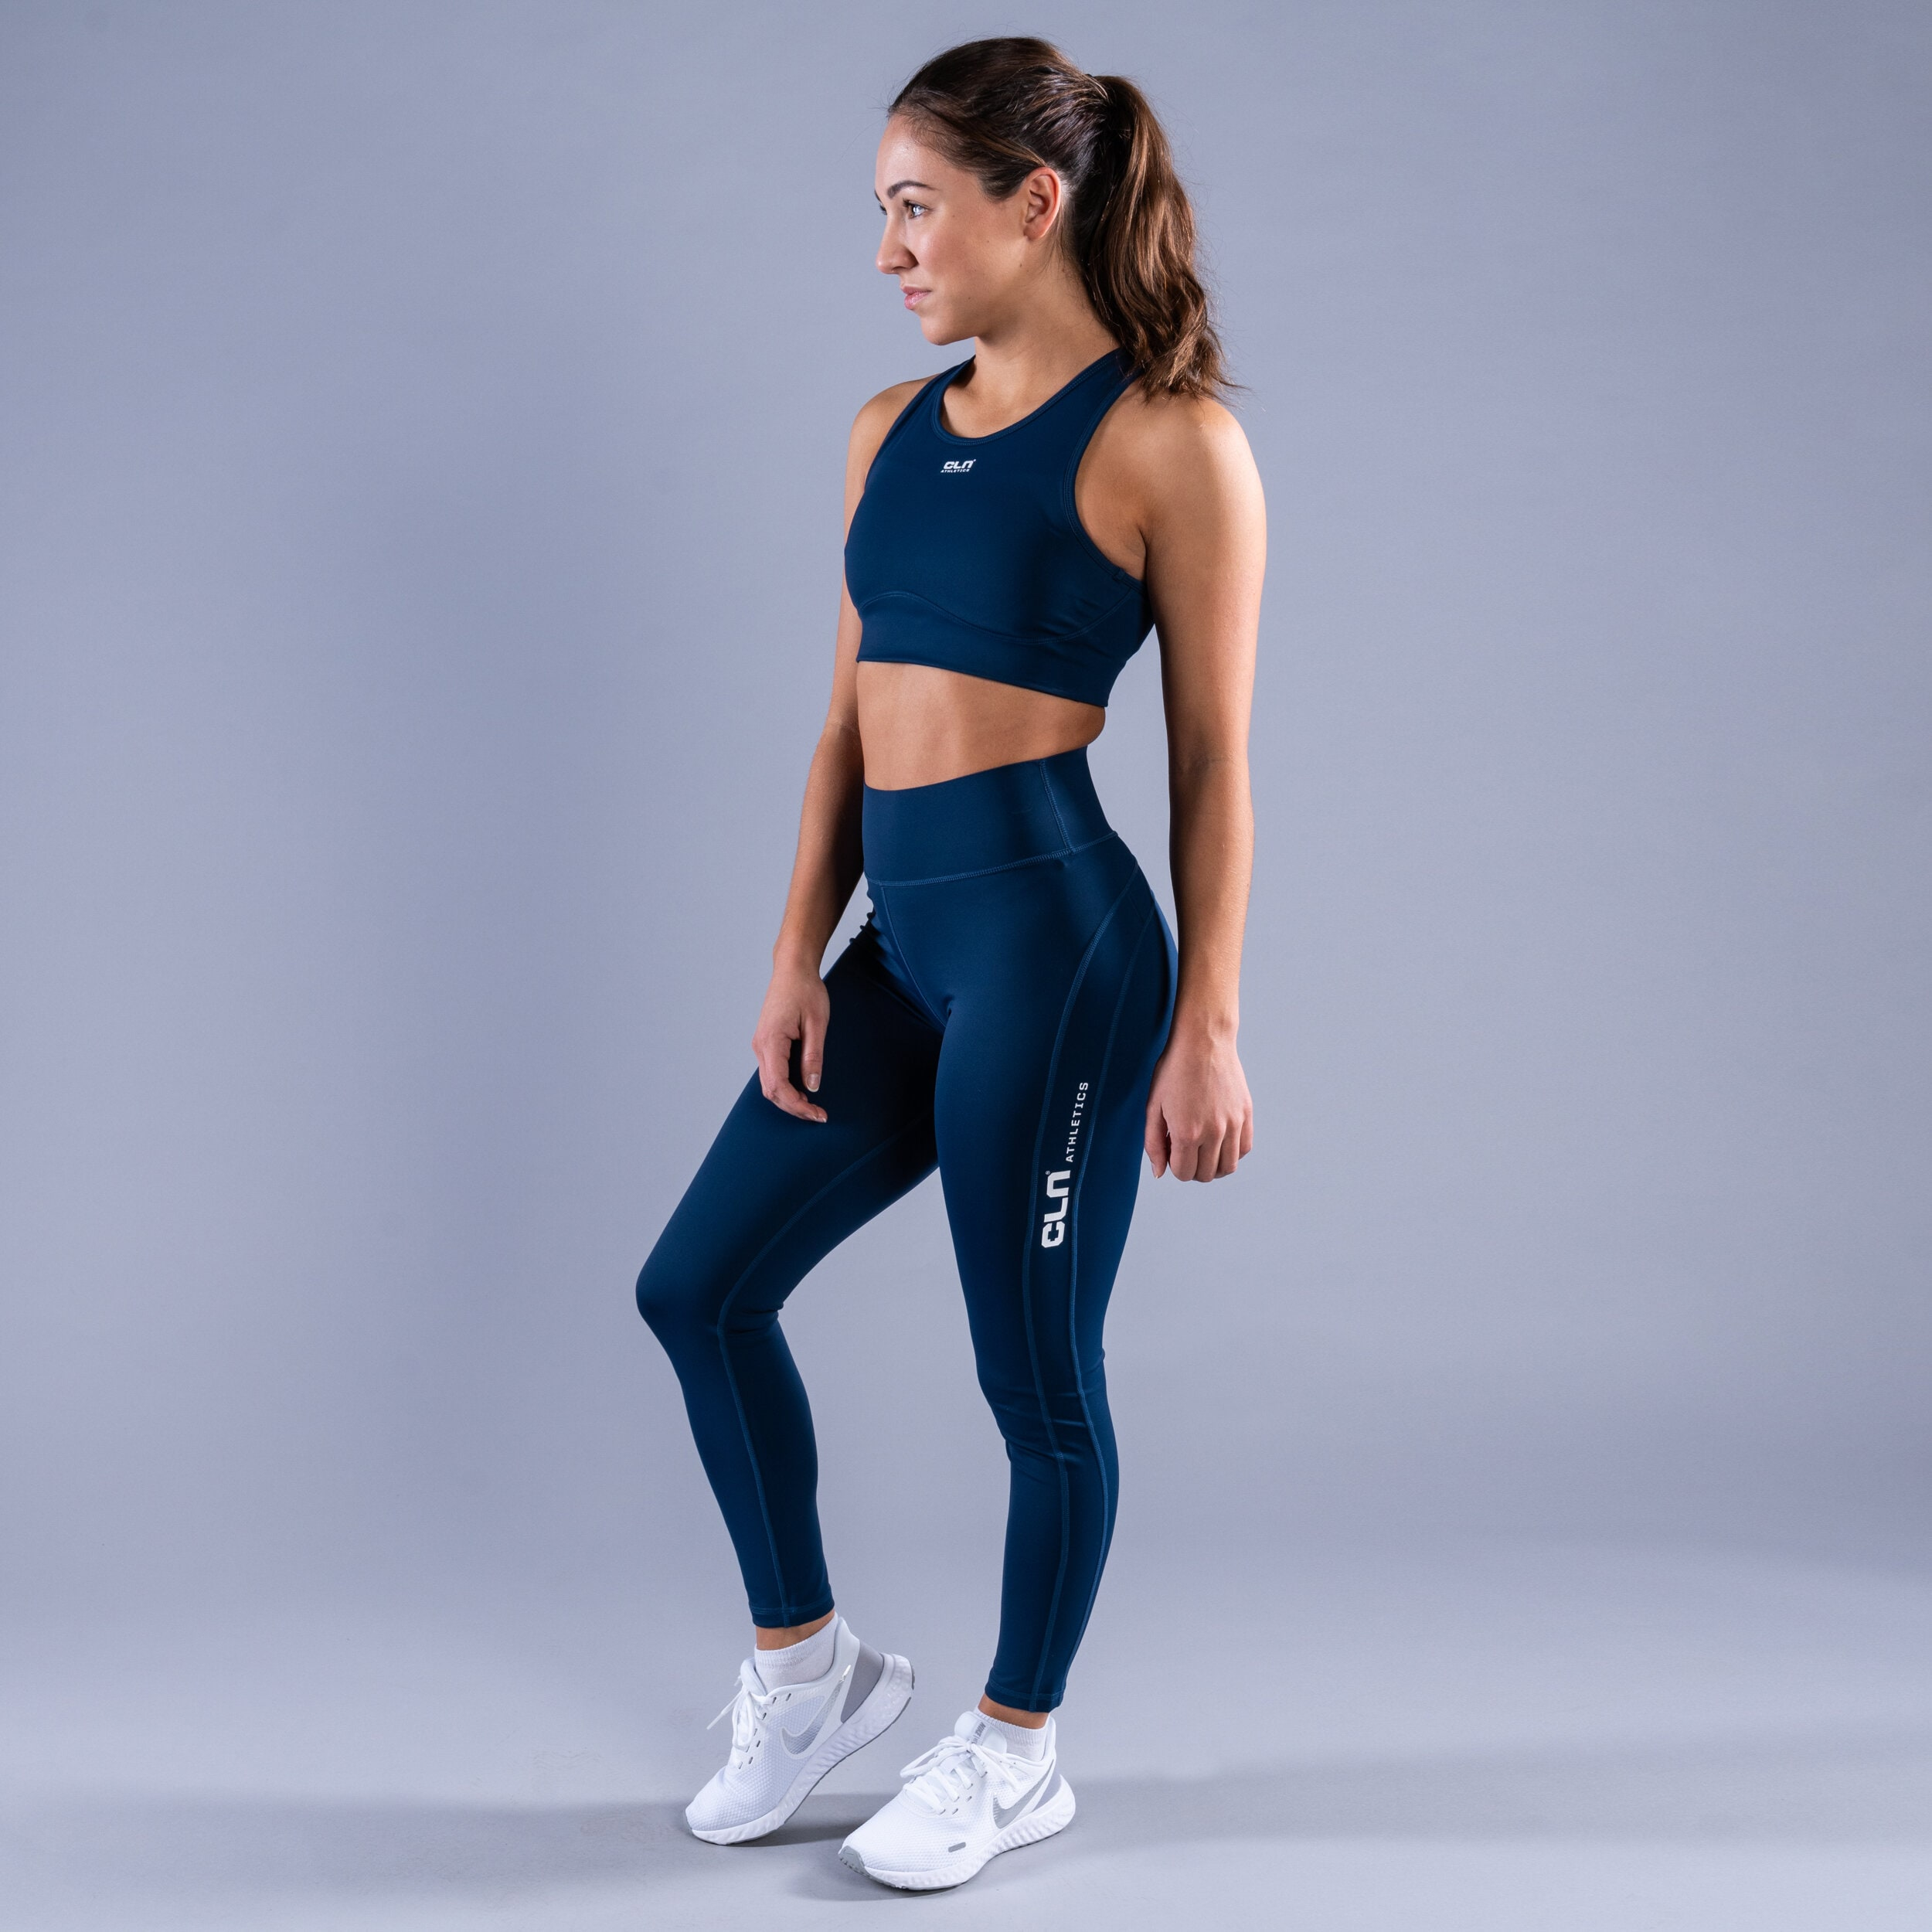 Omni tights - Intense sport bra Package Blue